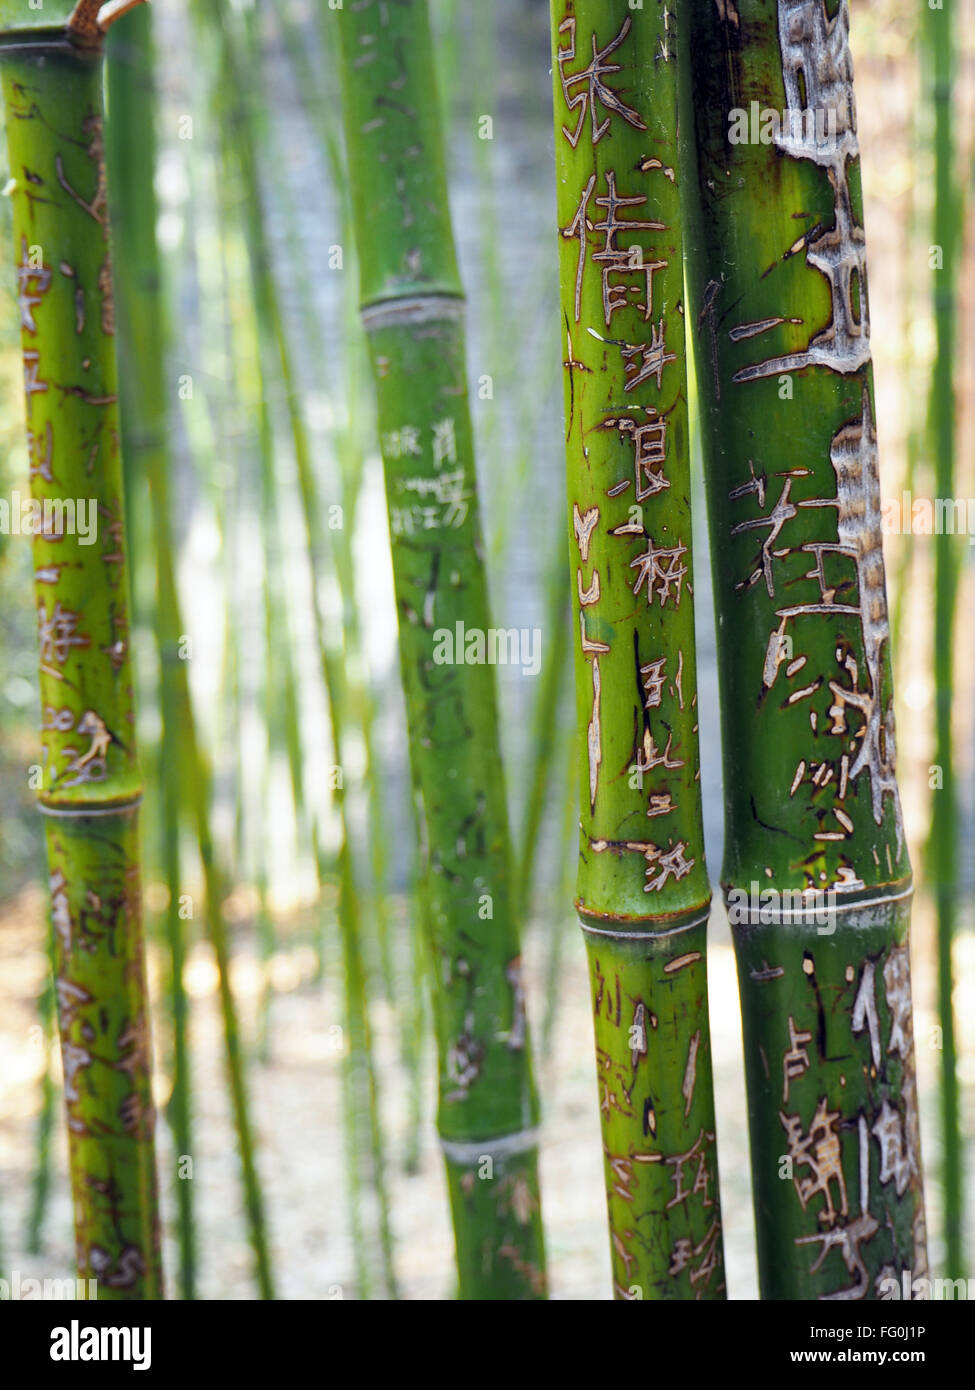 Close-Up Of Scripts Carved On Bamboo - Stock Image